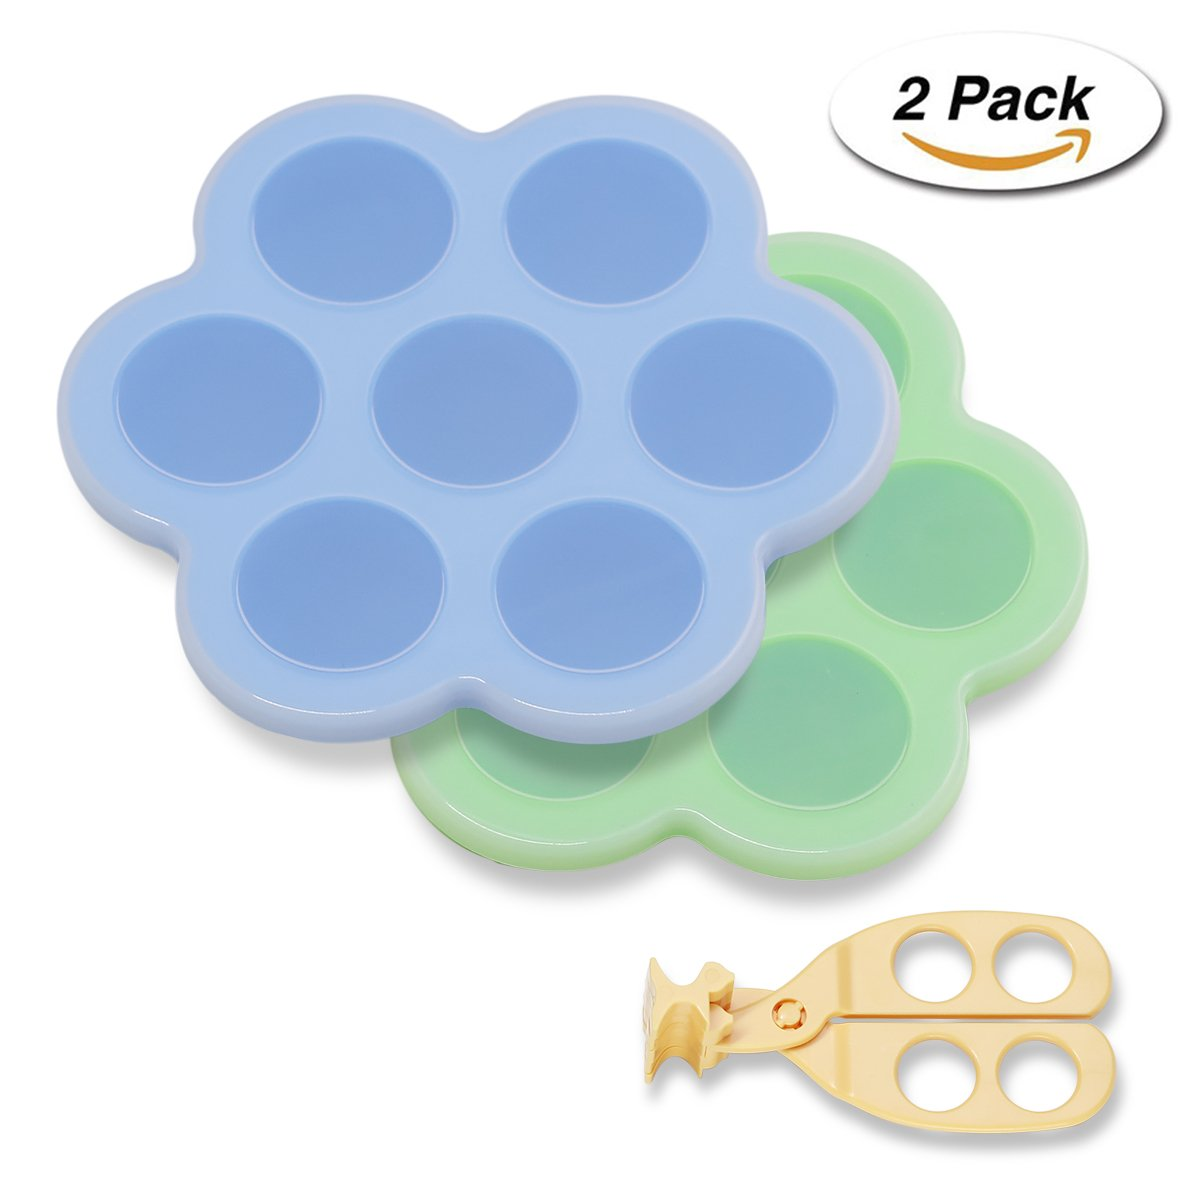 LAKatya Silicone Egg Bites Molds for Instant Pot Accessories - Fits Instant Pot 5,6,8 qt Pressure Cooker, Reusable Storage Container and Freezer Tray with Lid(Food cutter Included) (2, Blue and green)